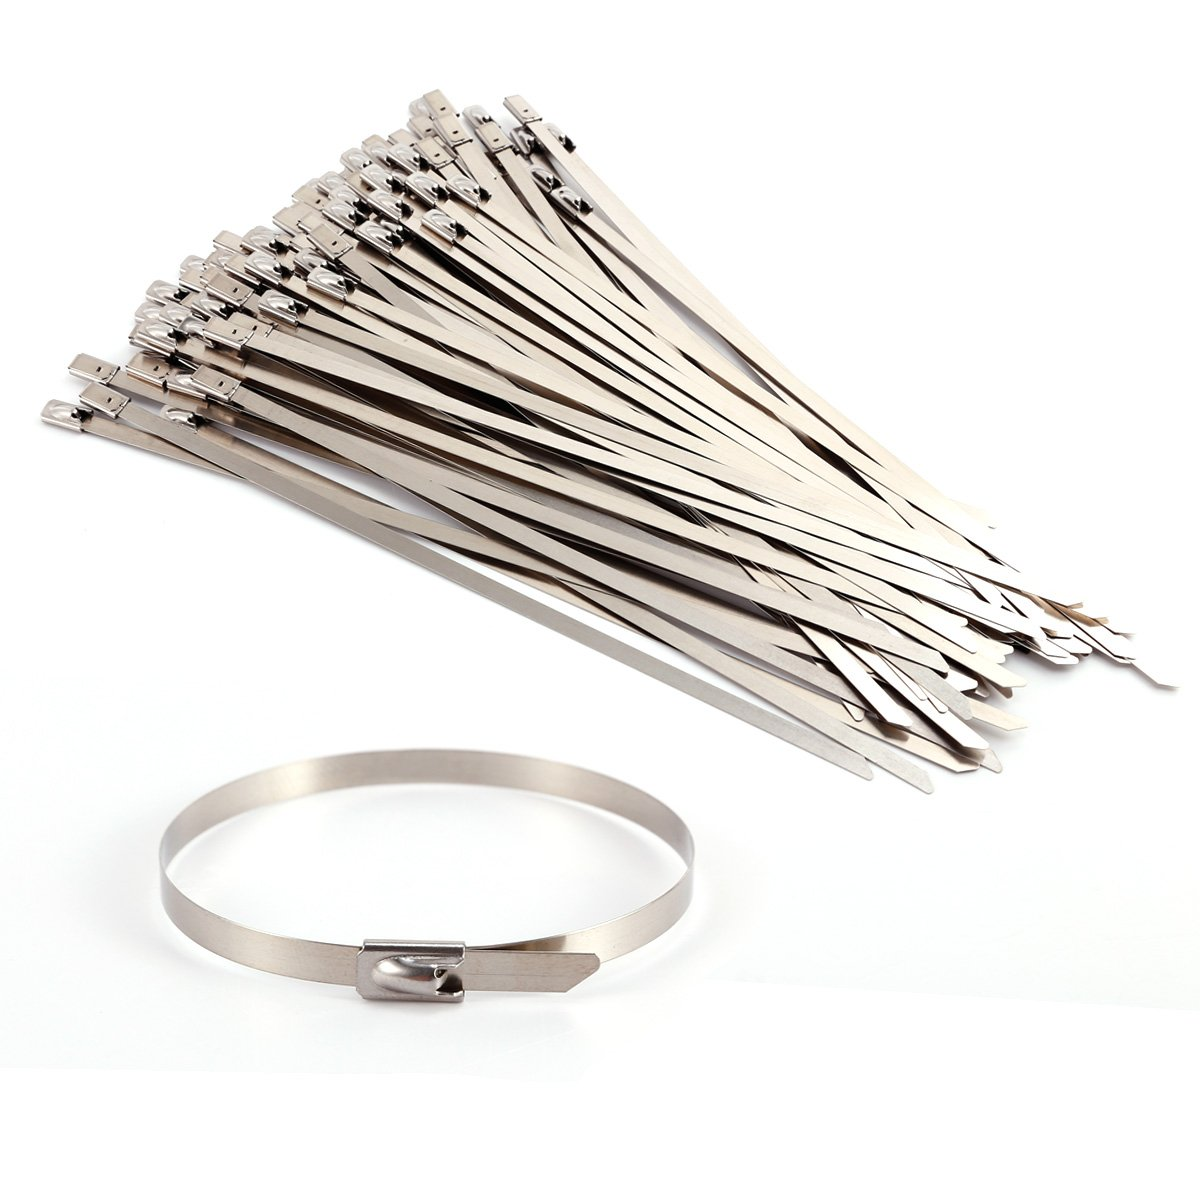 Stainless Steel Metal Cable Ties Tie Zip Wrap Exhaust Heat Straps Induction Pipe 100pcs SurePromise Limited